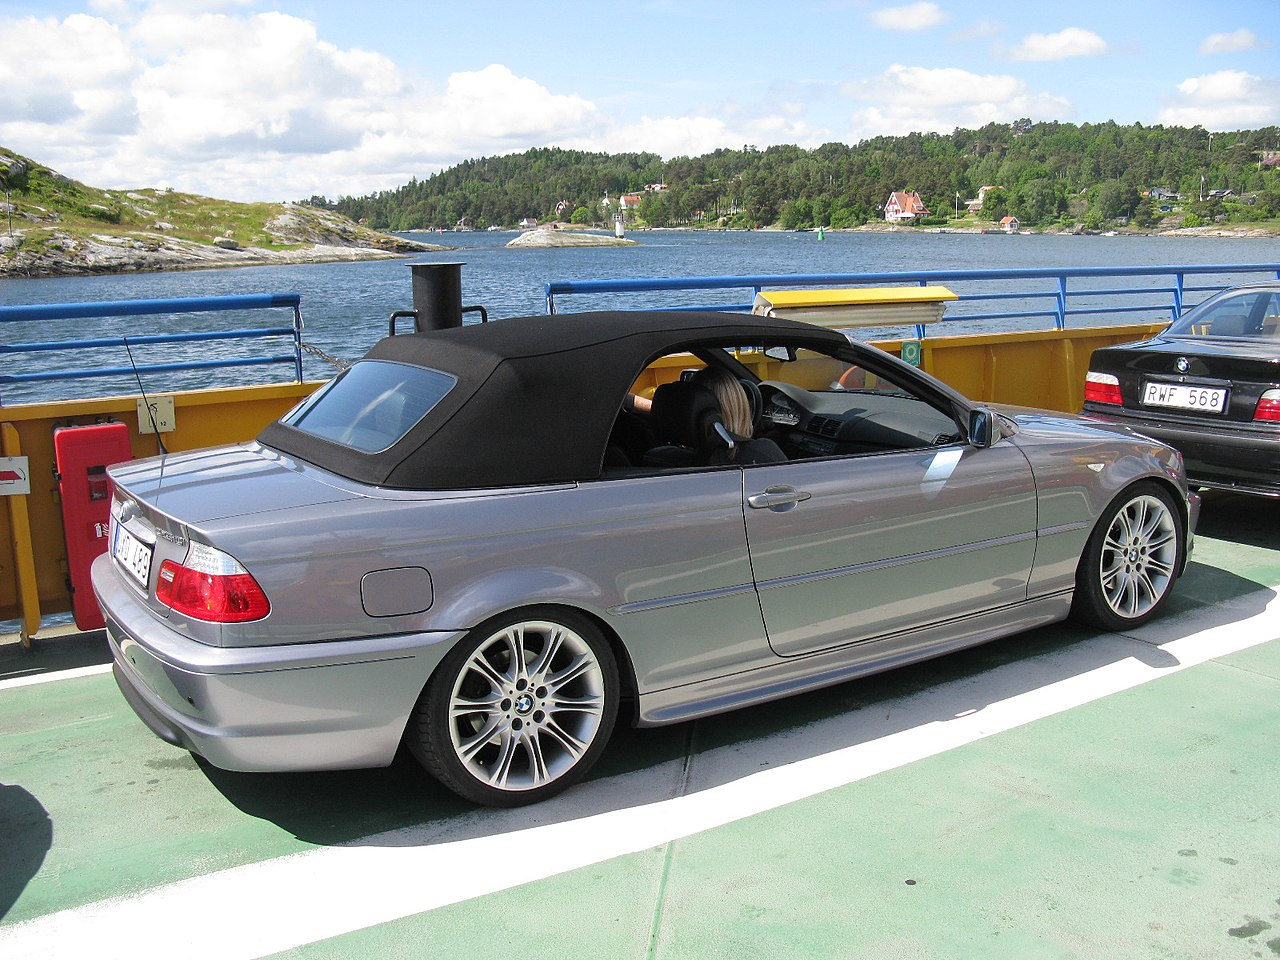 file bmw 325 ci cabriolet m sport e46 7345525178 jpg wikimedia commons. Black Bedroom Furniture Sets. Home Design Ideas